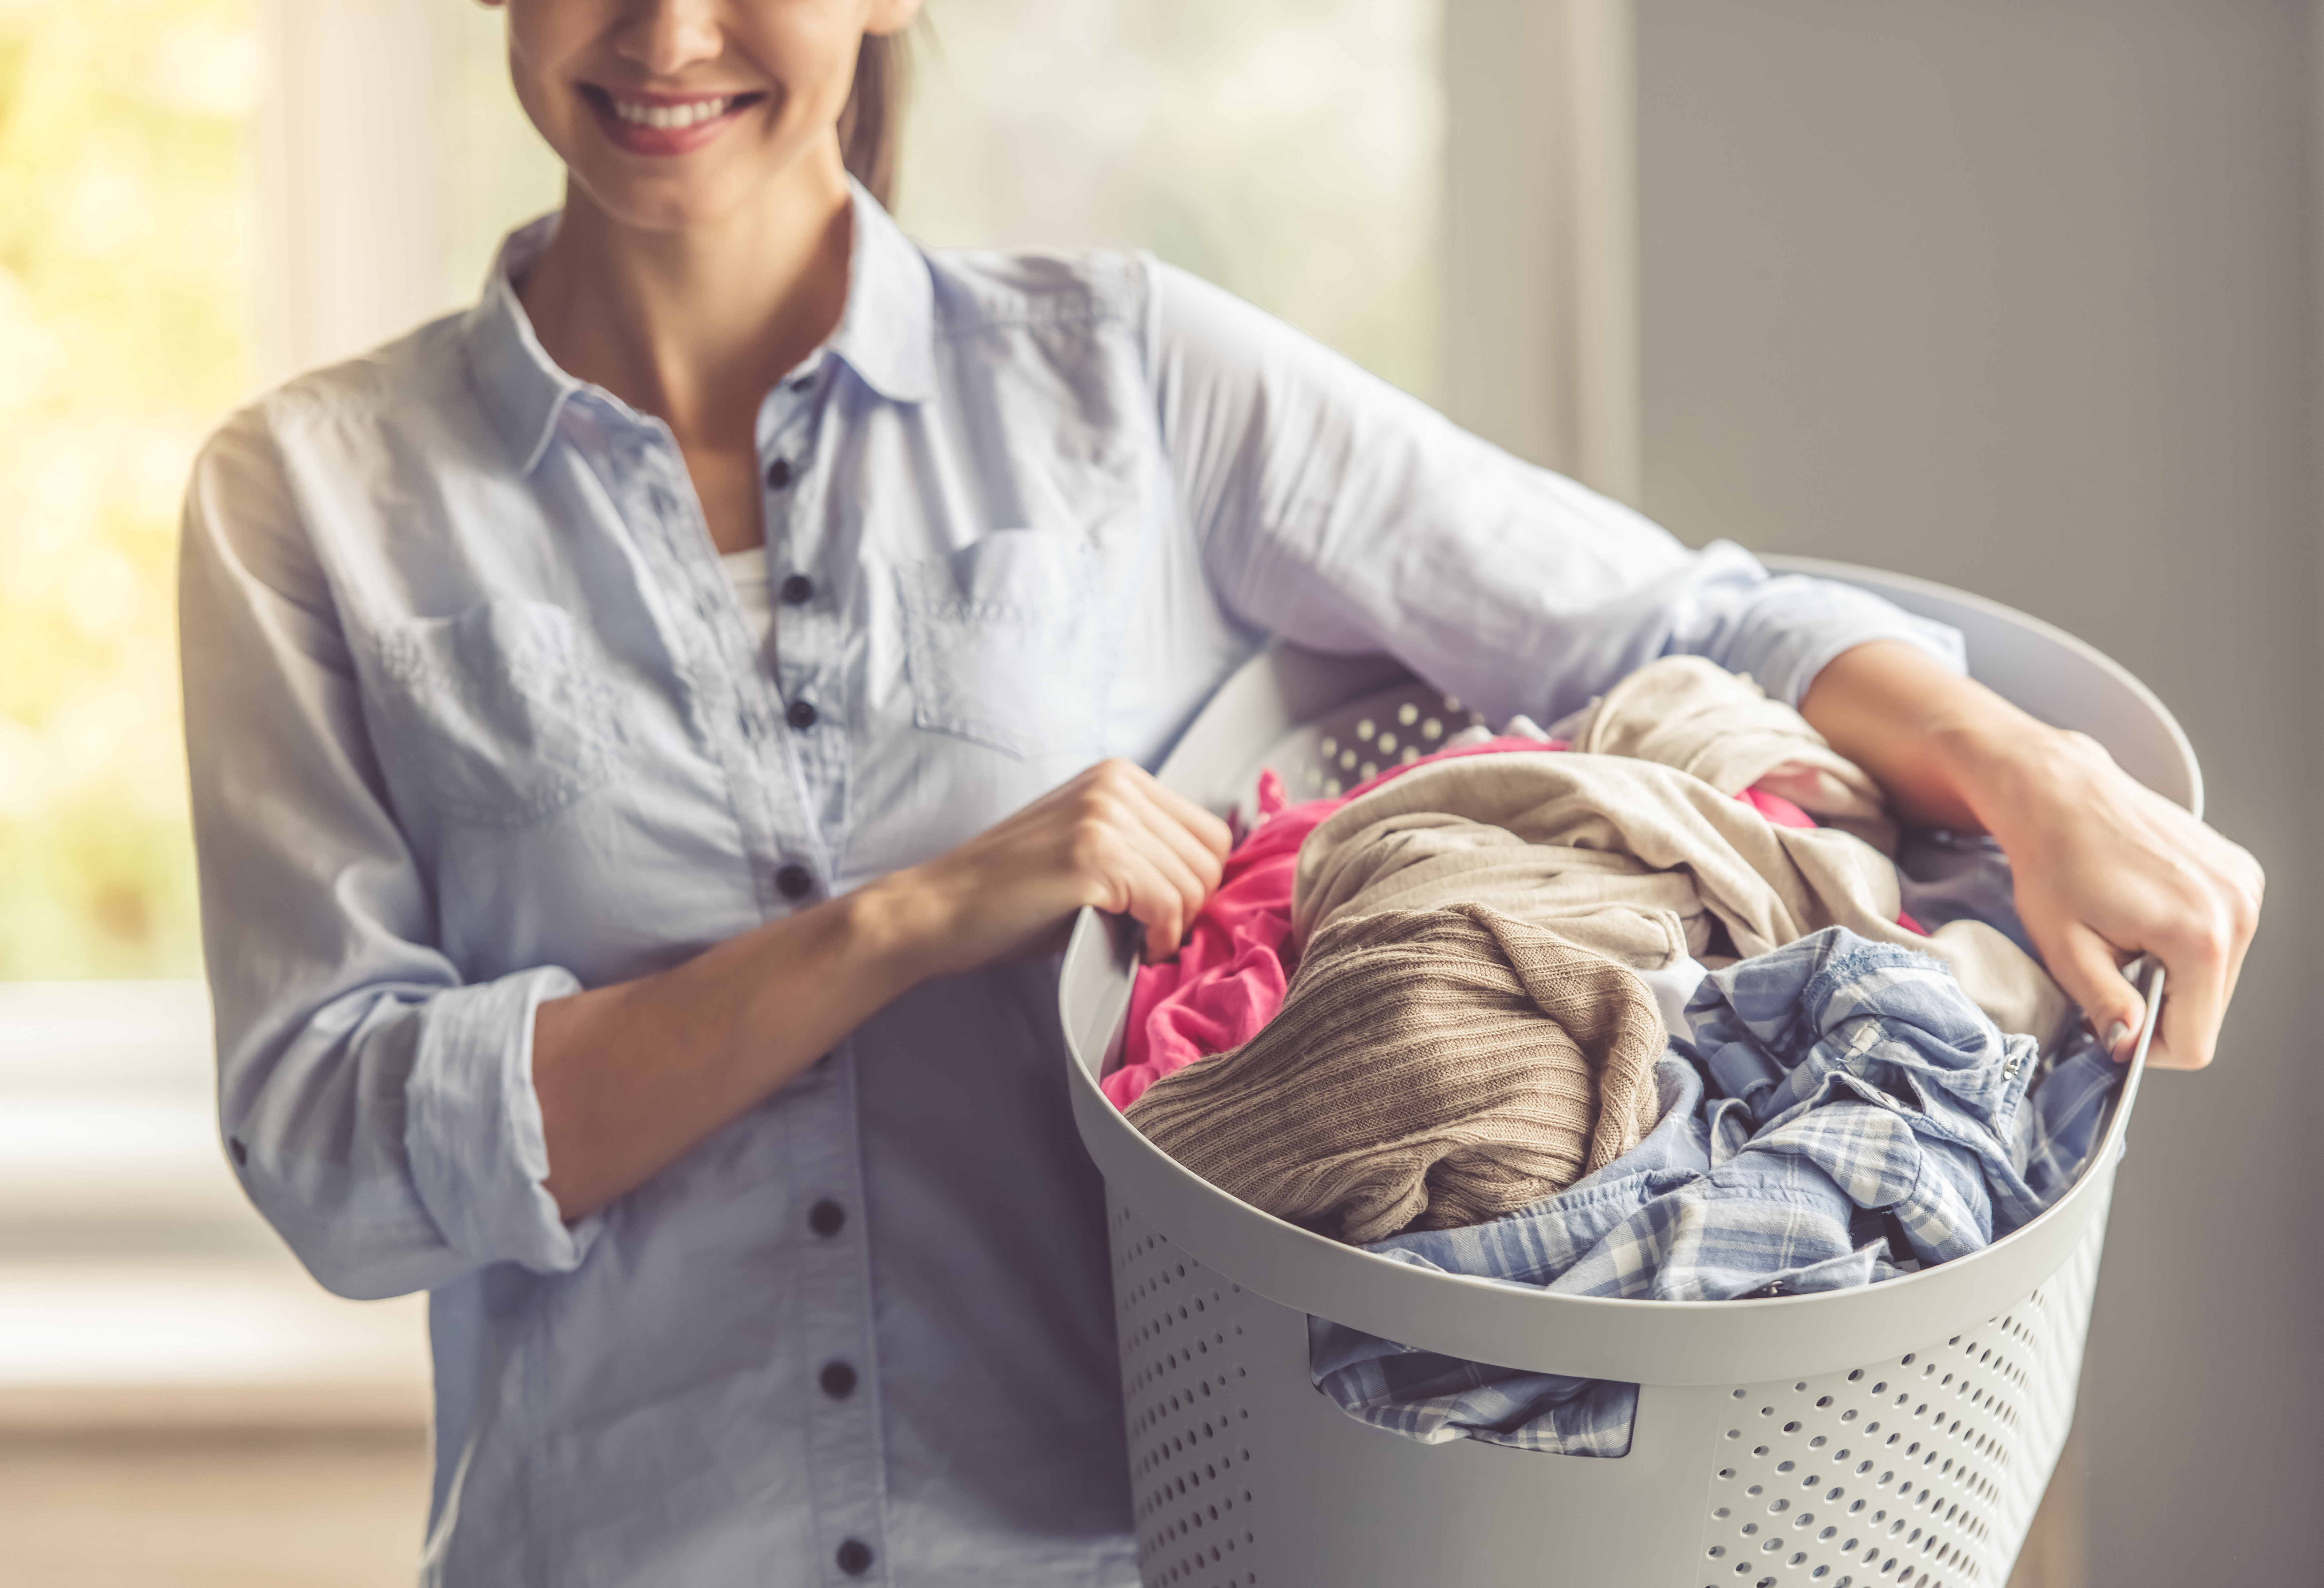 Top Load Vs Front Load Washing Machines What Are The Pros And Cons Of Each